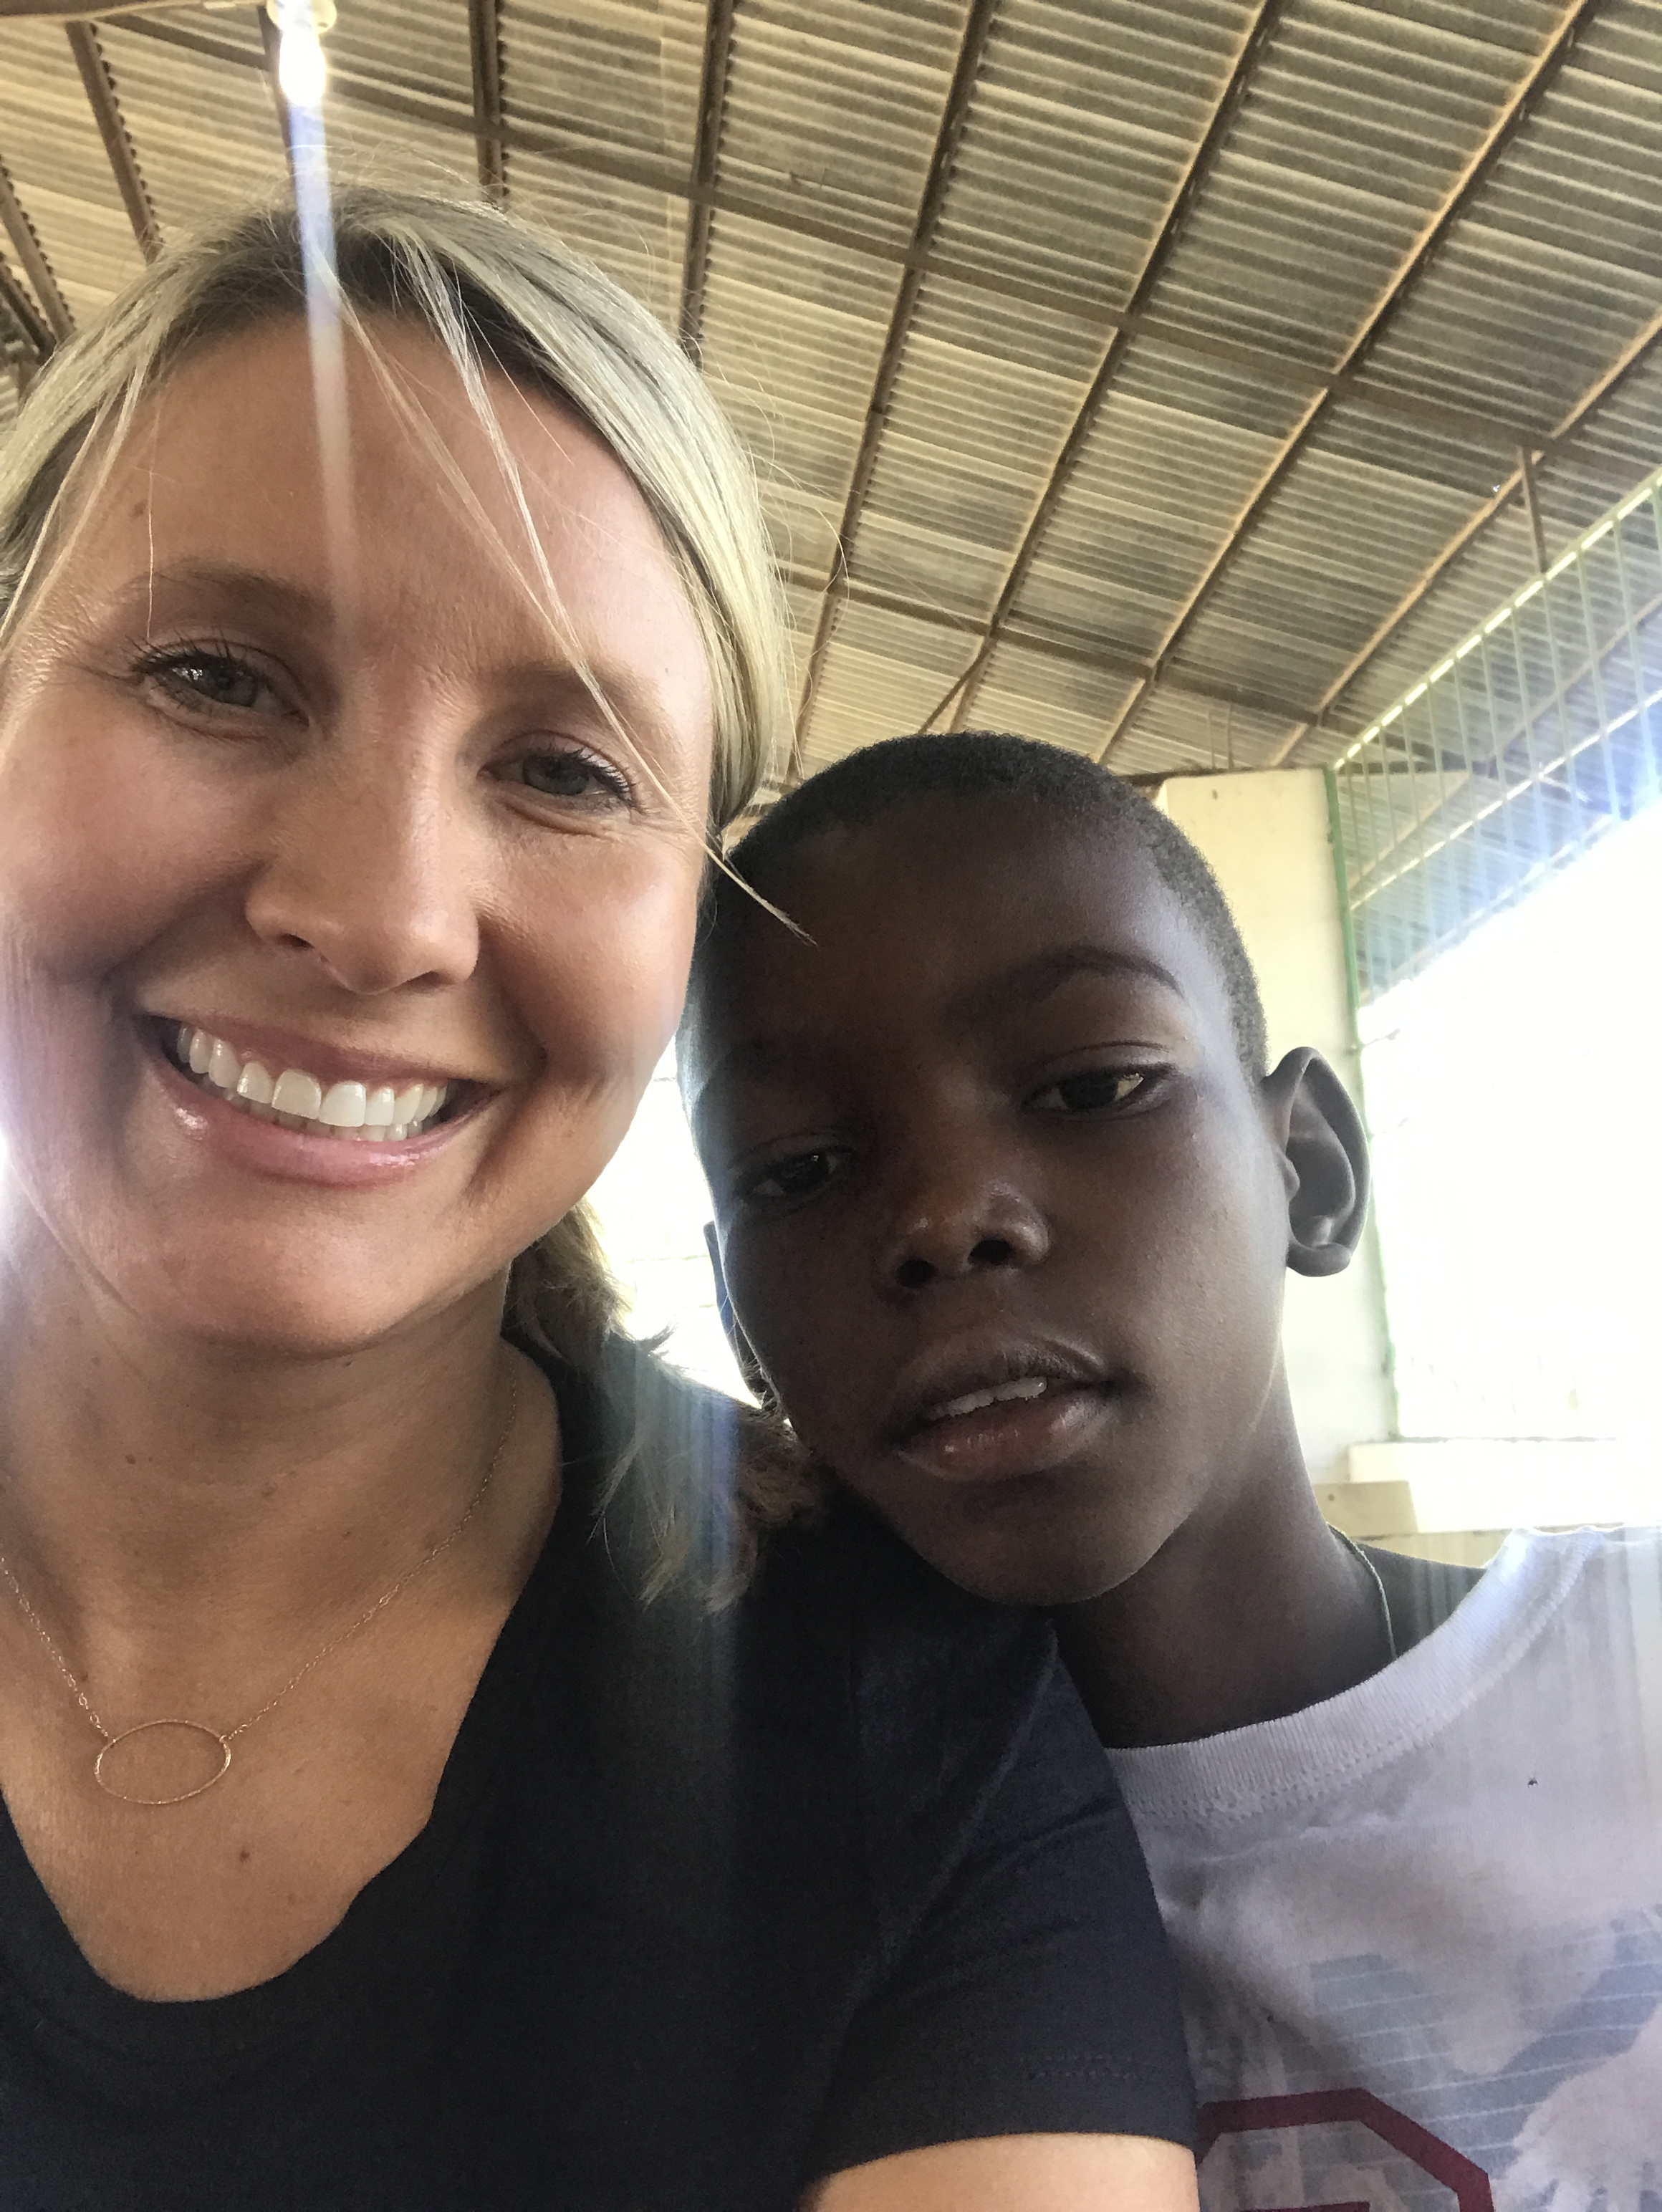 The little Haitian boy who friended me before church